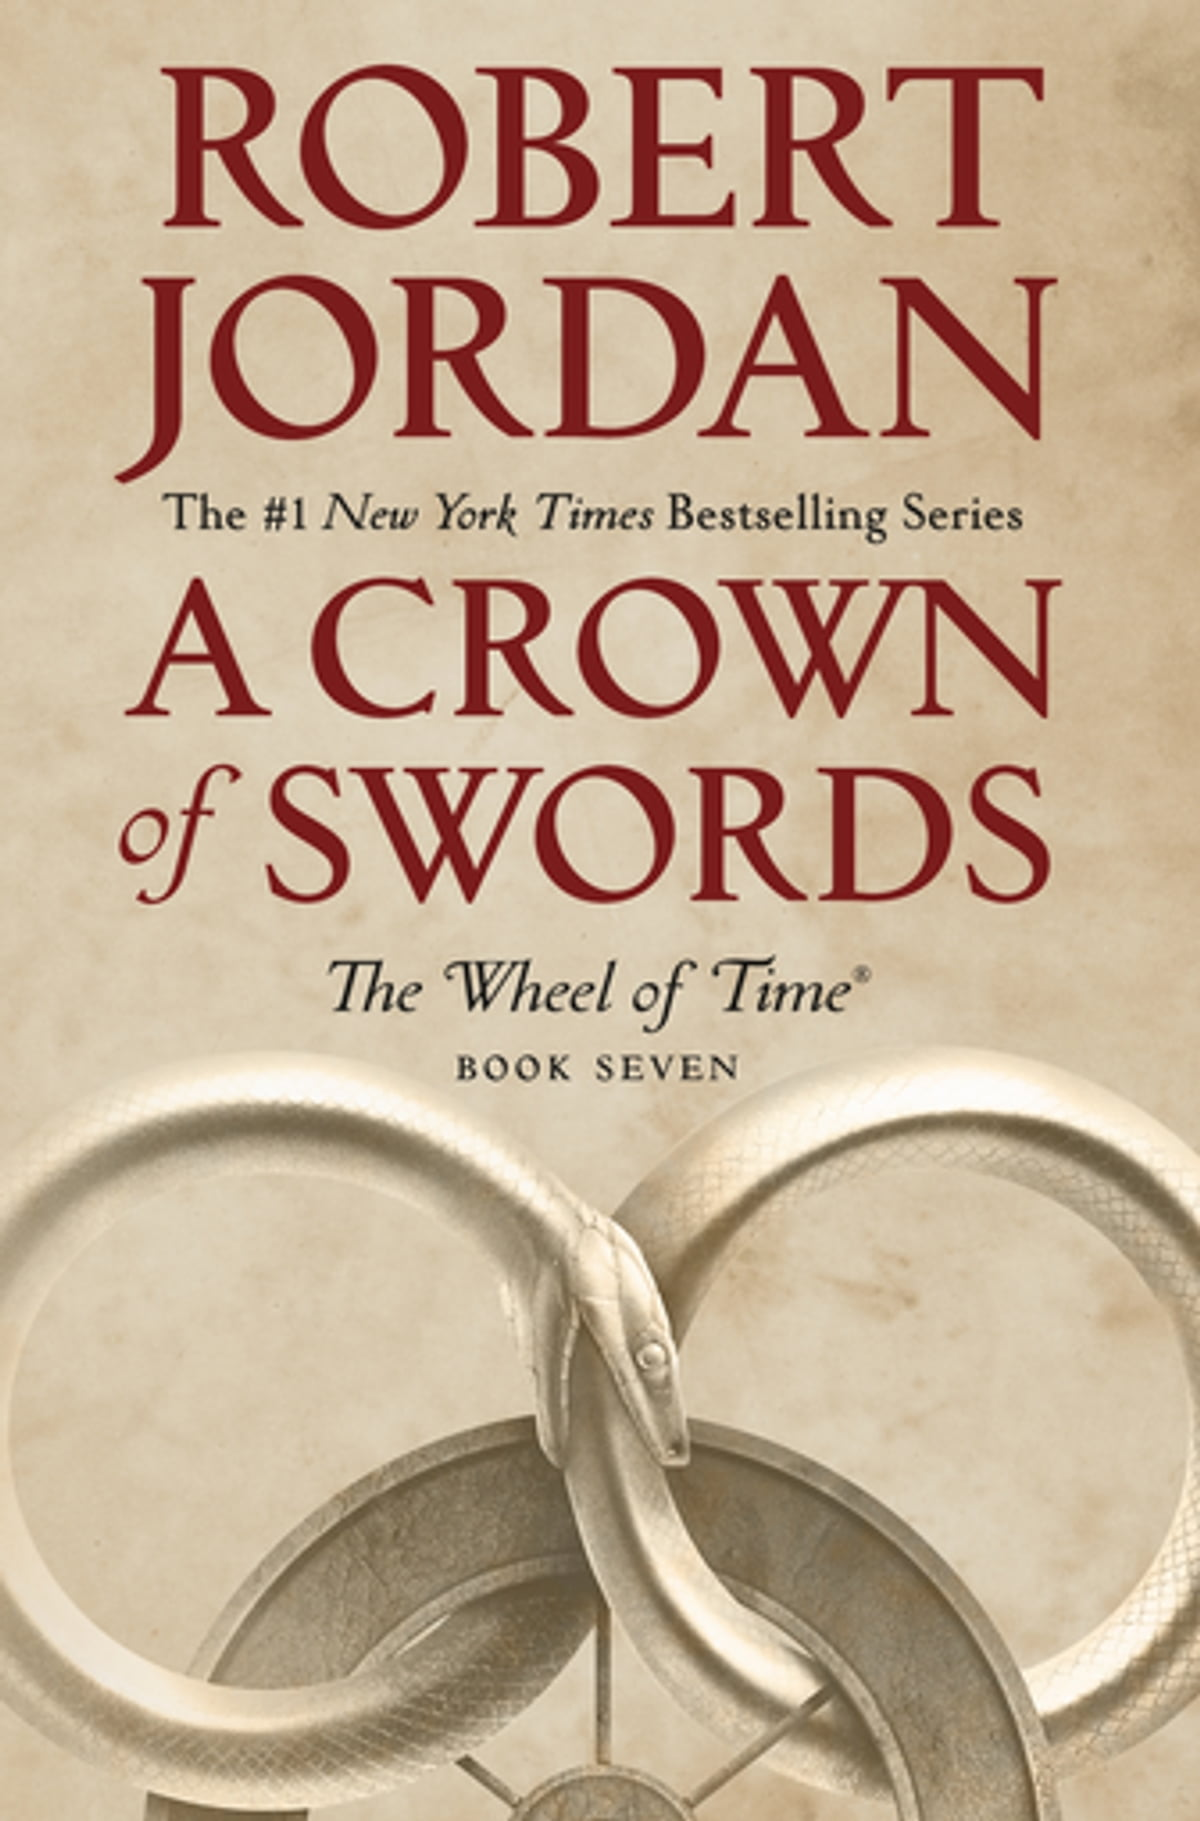 Nuevo Libro De Patrick Rothfuss A Crown Of Swords Ebooks By Robert Jordan Rakuten Kobo